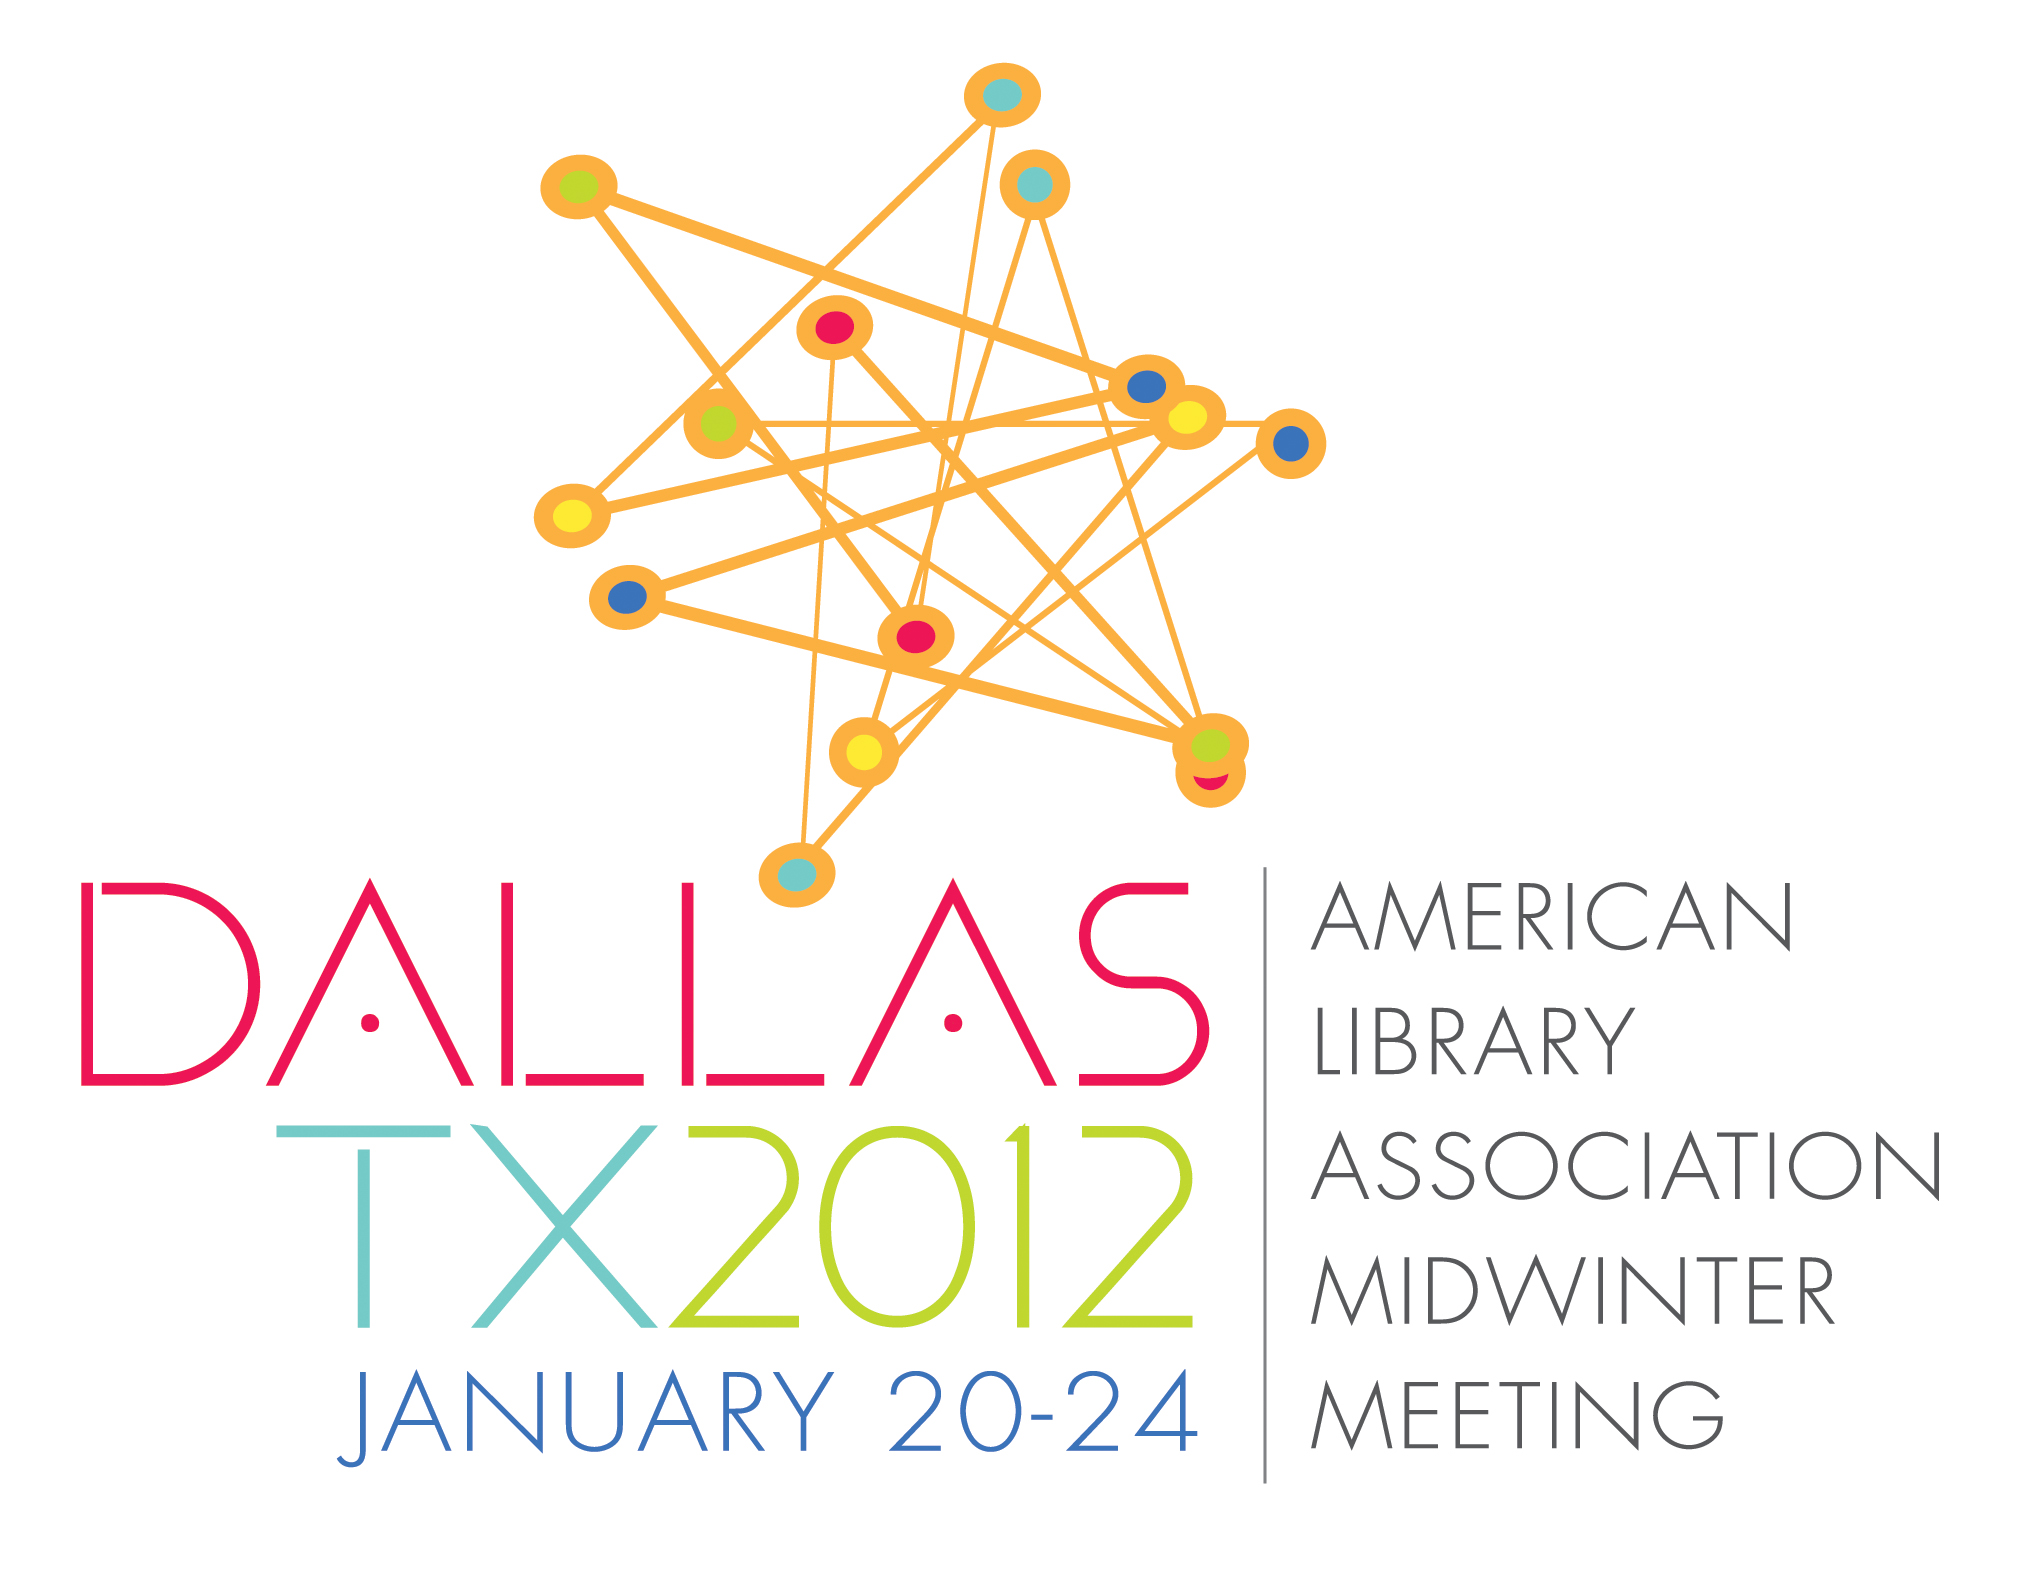 Color logo:American Library Association Midwinter Meeting, Dallas, Texas January 20-24, 2012